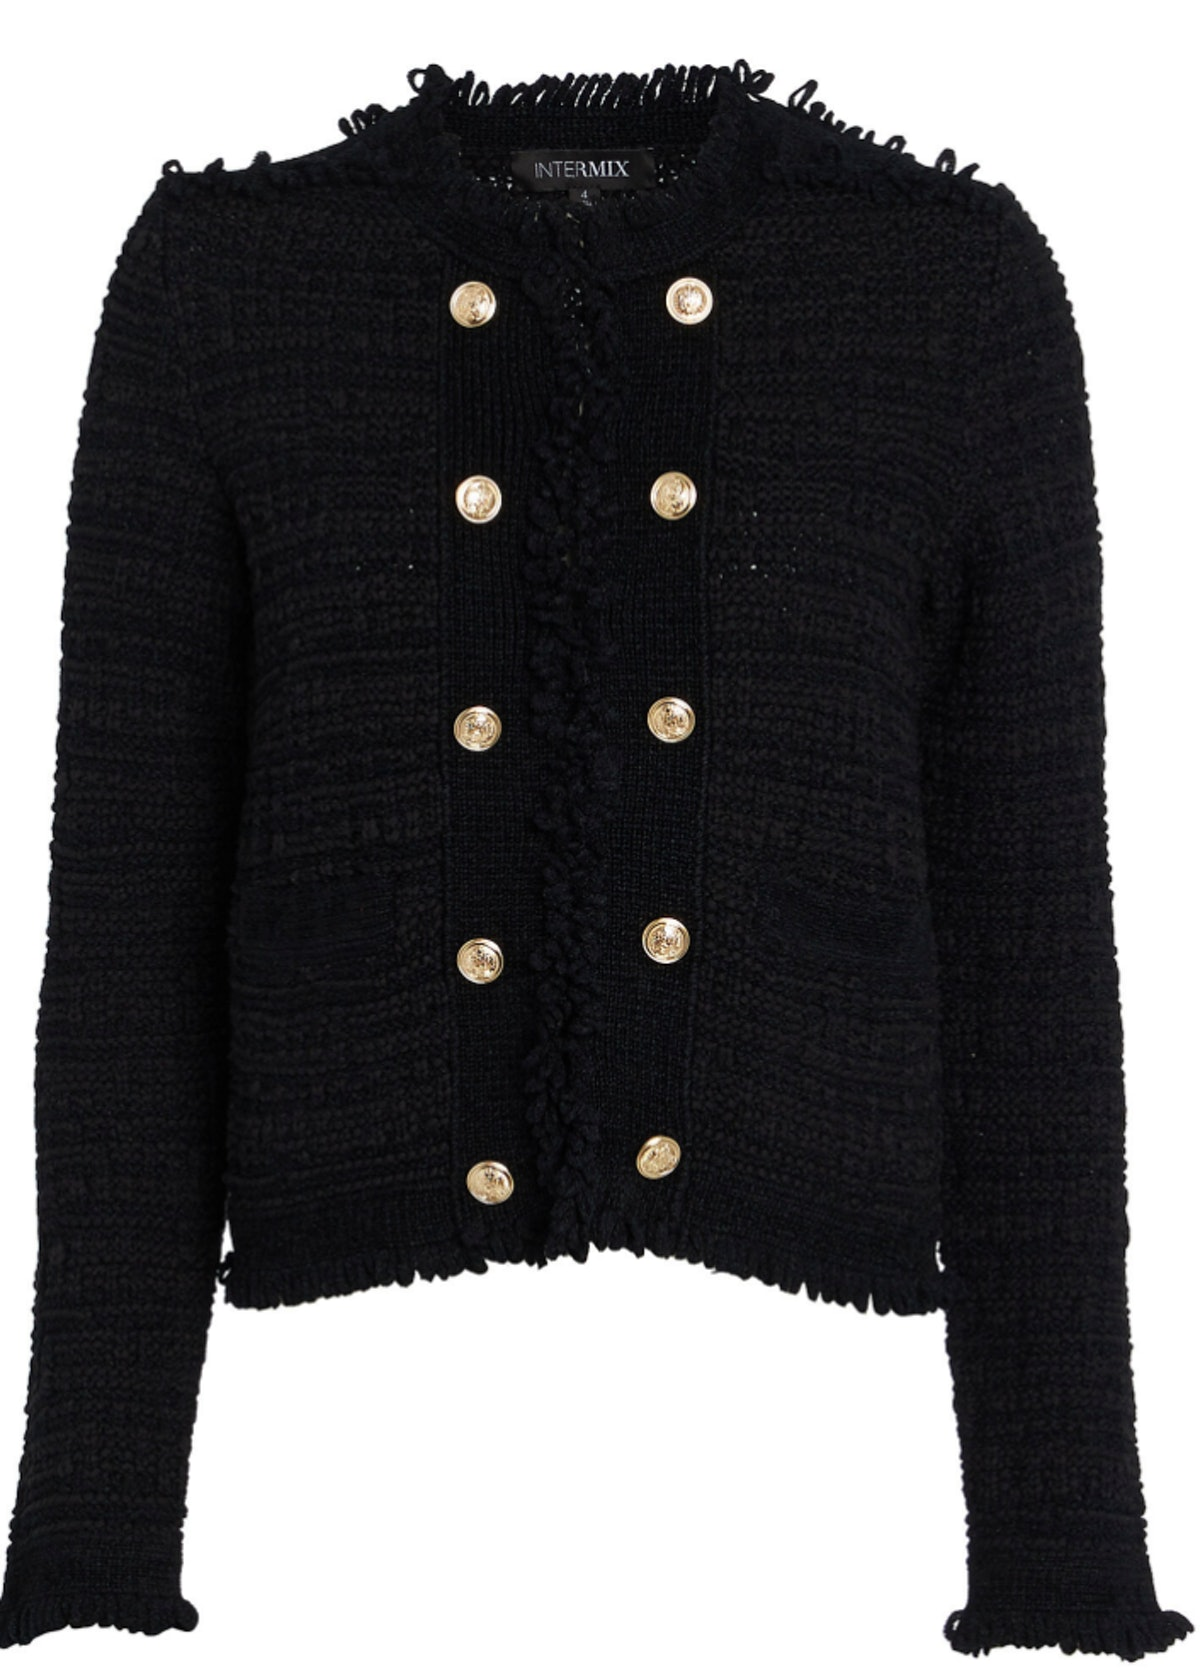 INTERMIX Lila Cropped Knit Jacket with gold buttons.